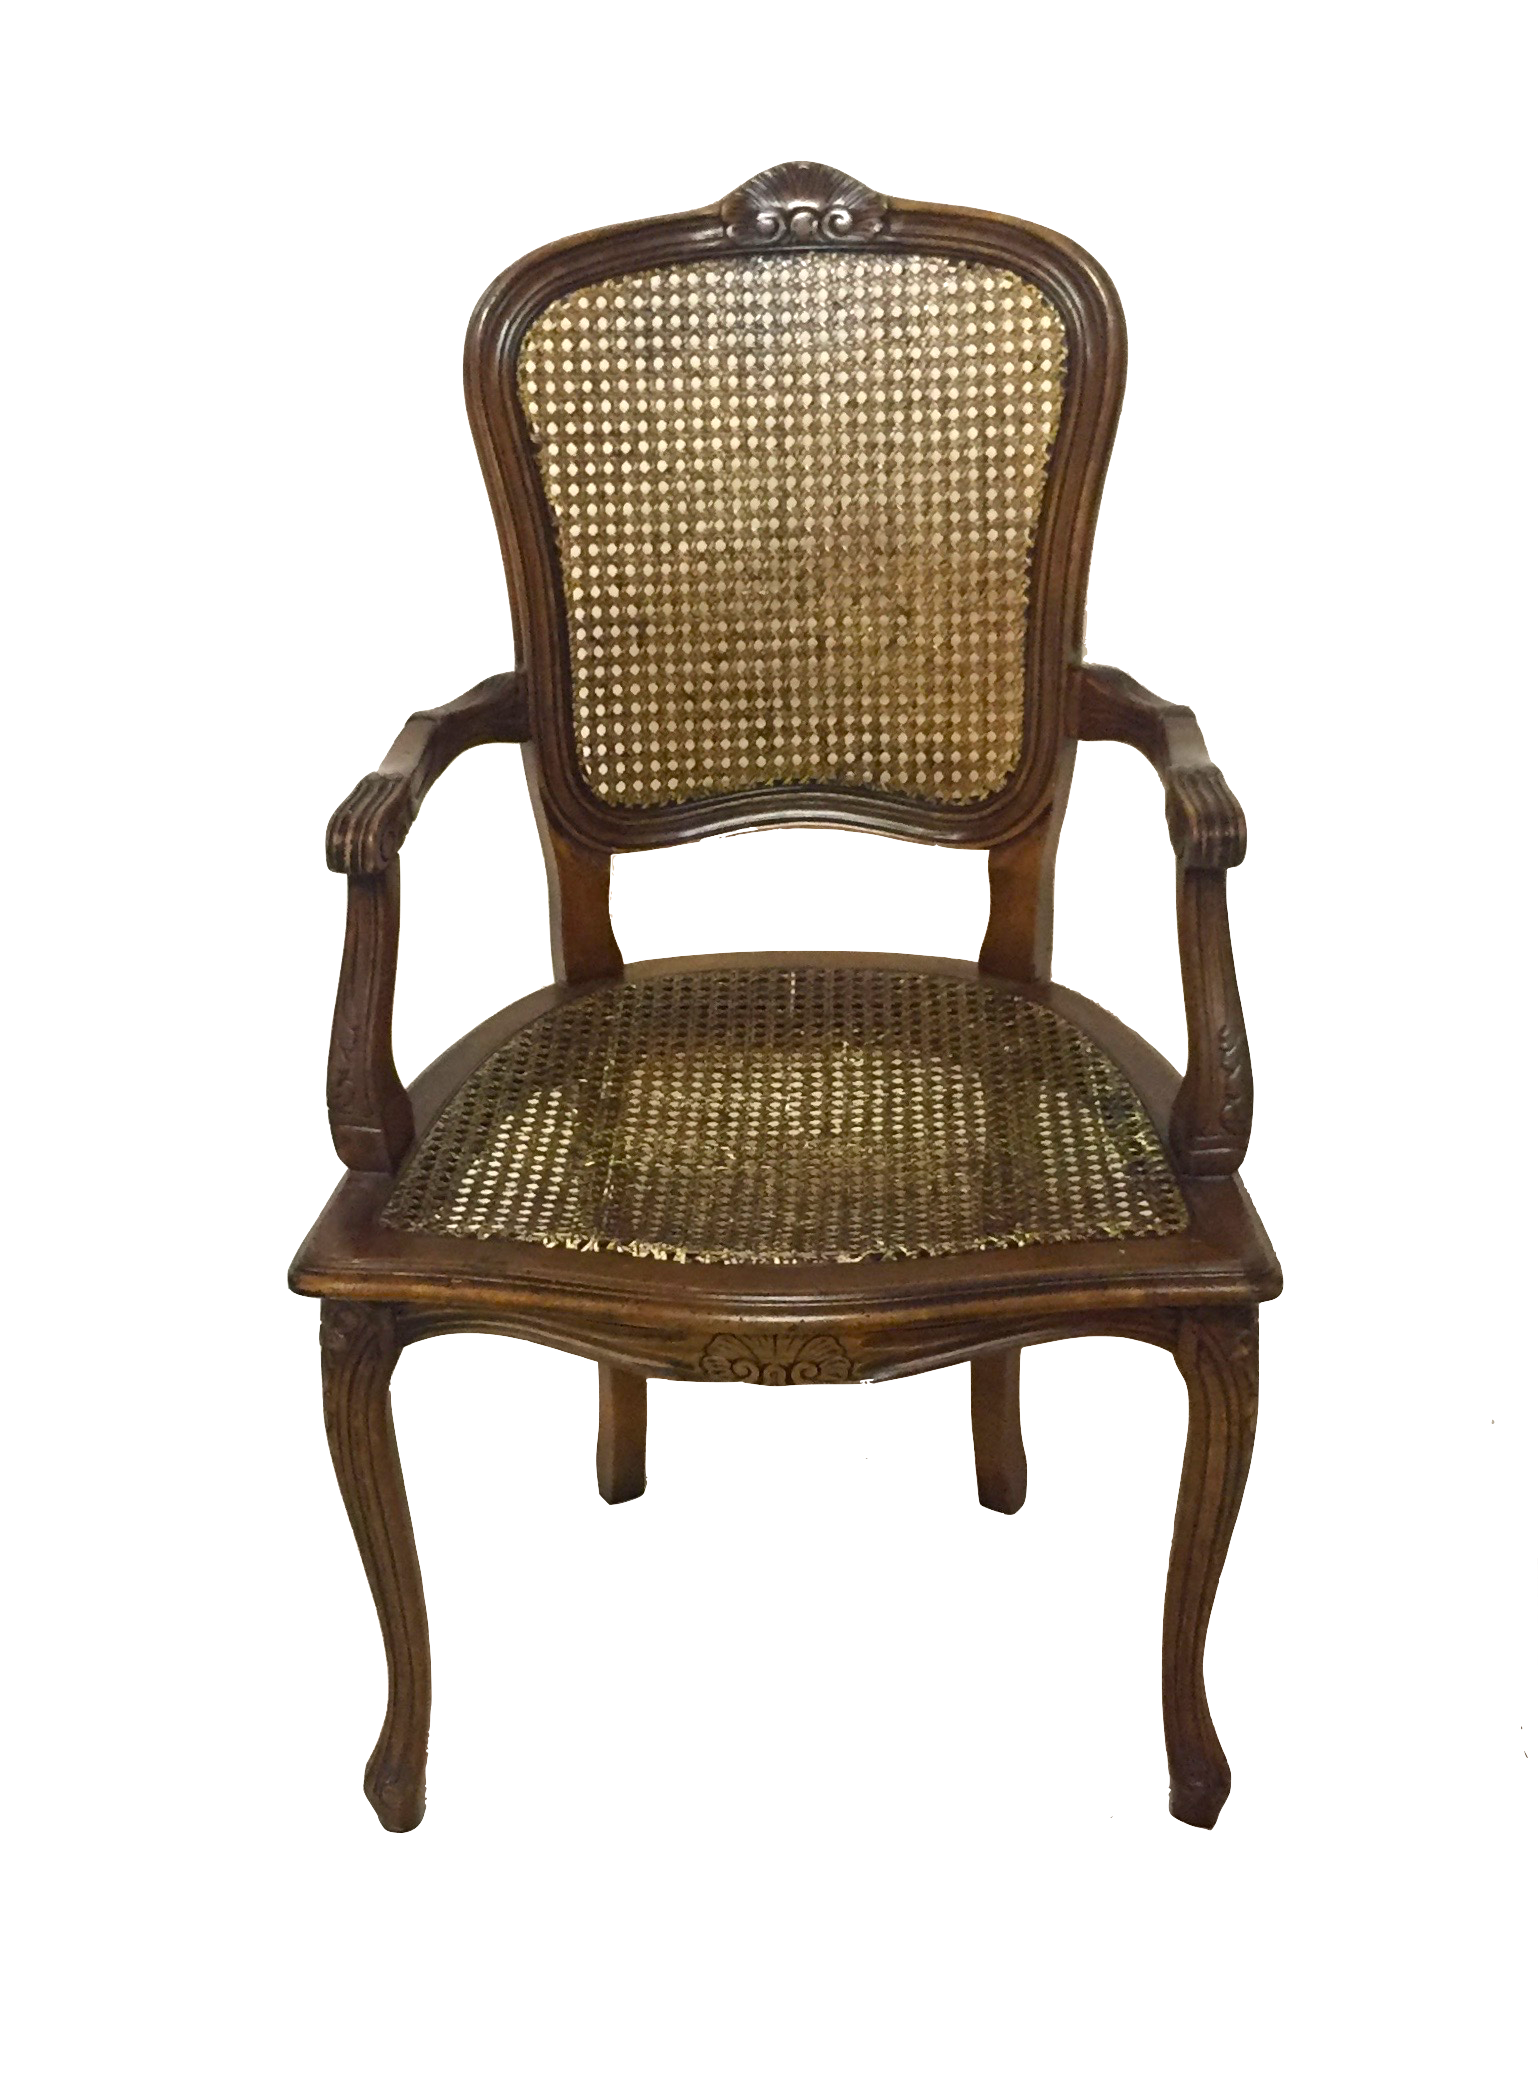 Victorian style furniture chair - Victorian Style Chair 125